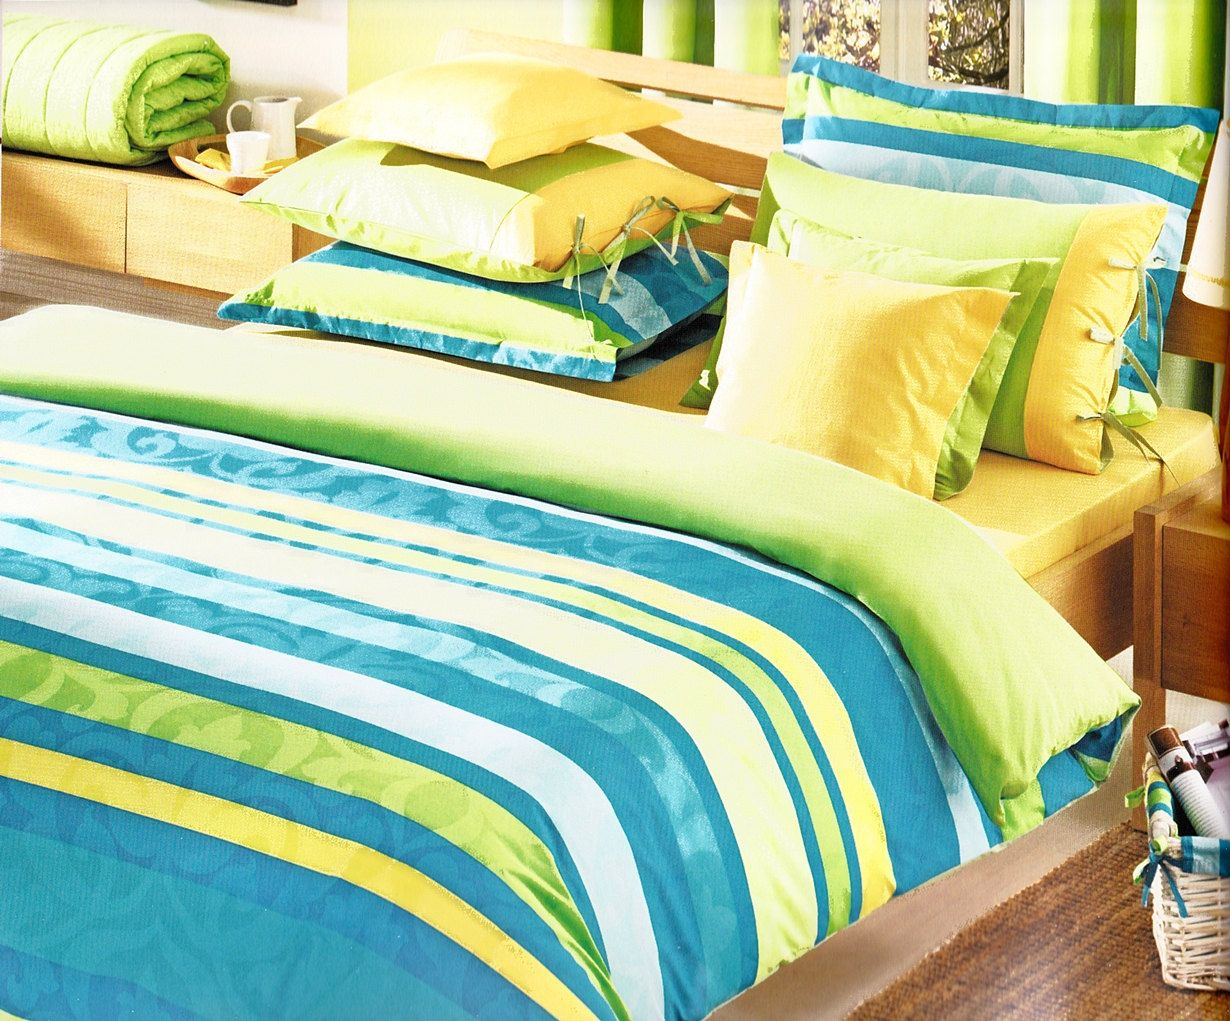 Custom queen size ocean blue turquoise lime green yellow striped and damask print bedding set